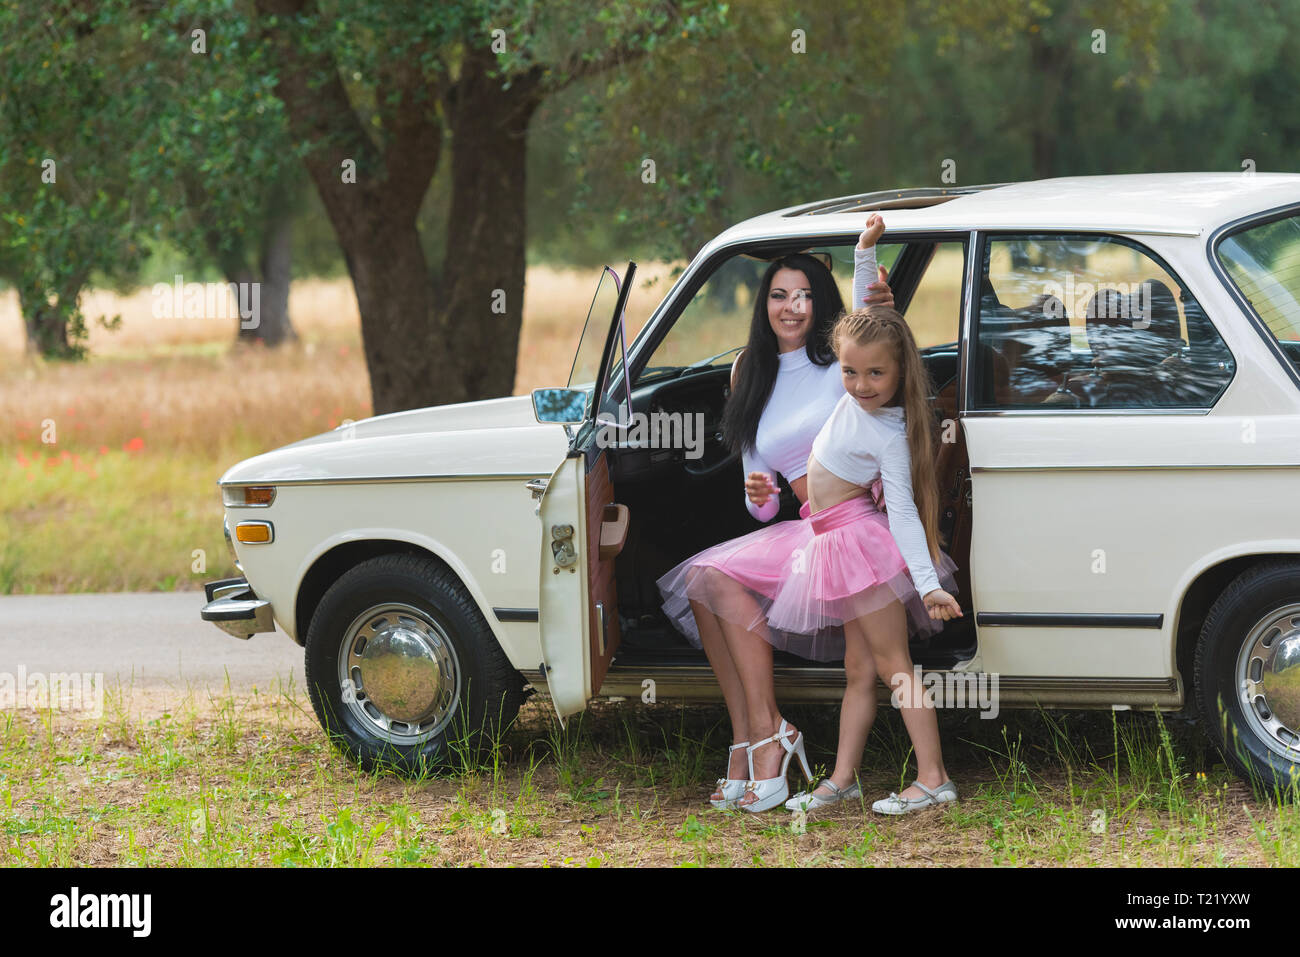 Happy family on a road trip in their car. Mom and daughter are traveling by car. Summer ride by automobile - Stock Image